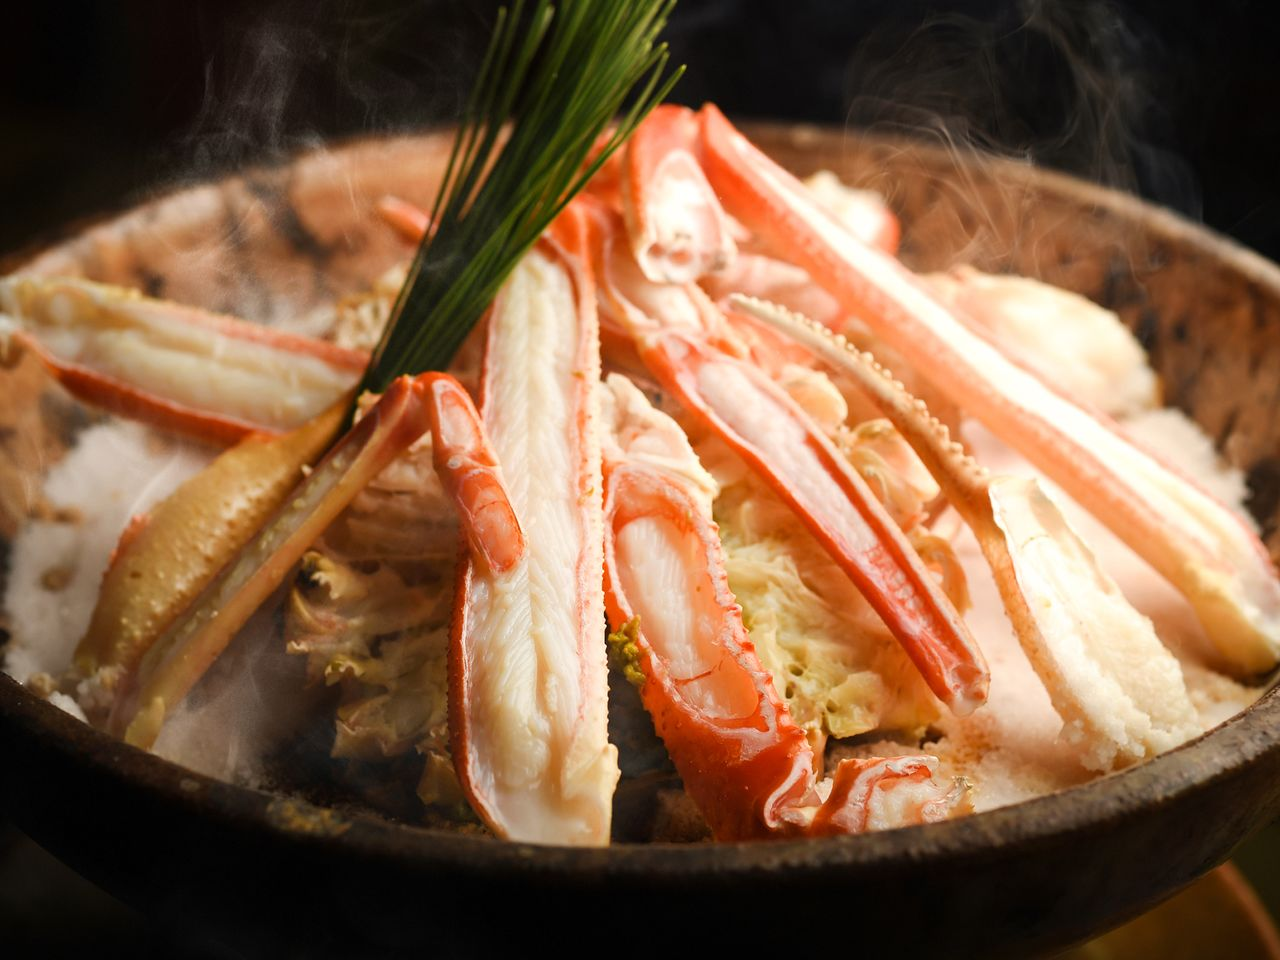 The taiza-gani is not a common catch, making its flavor all the more treasured by gourmets.